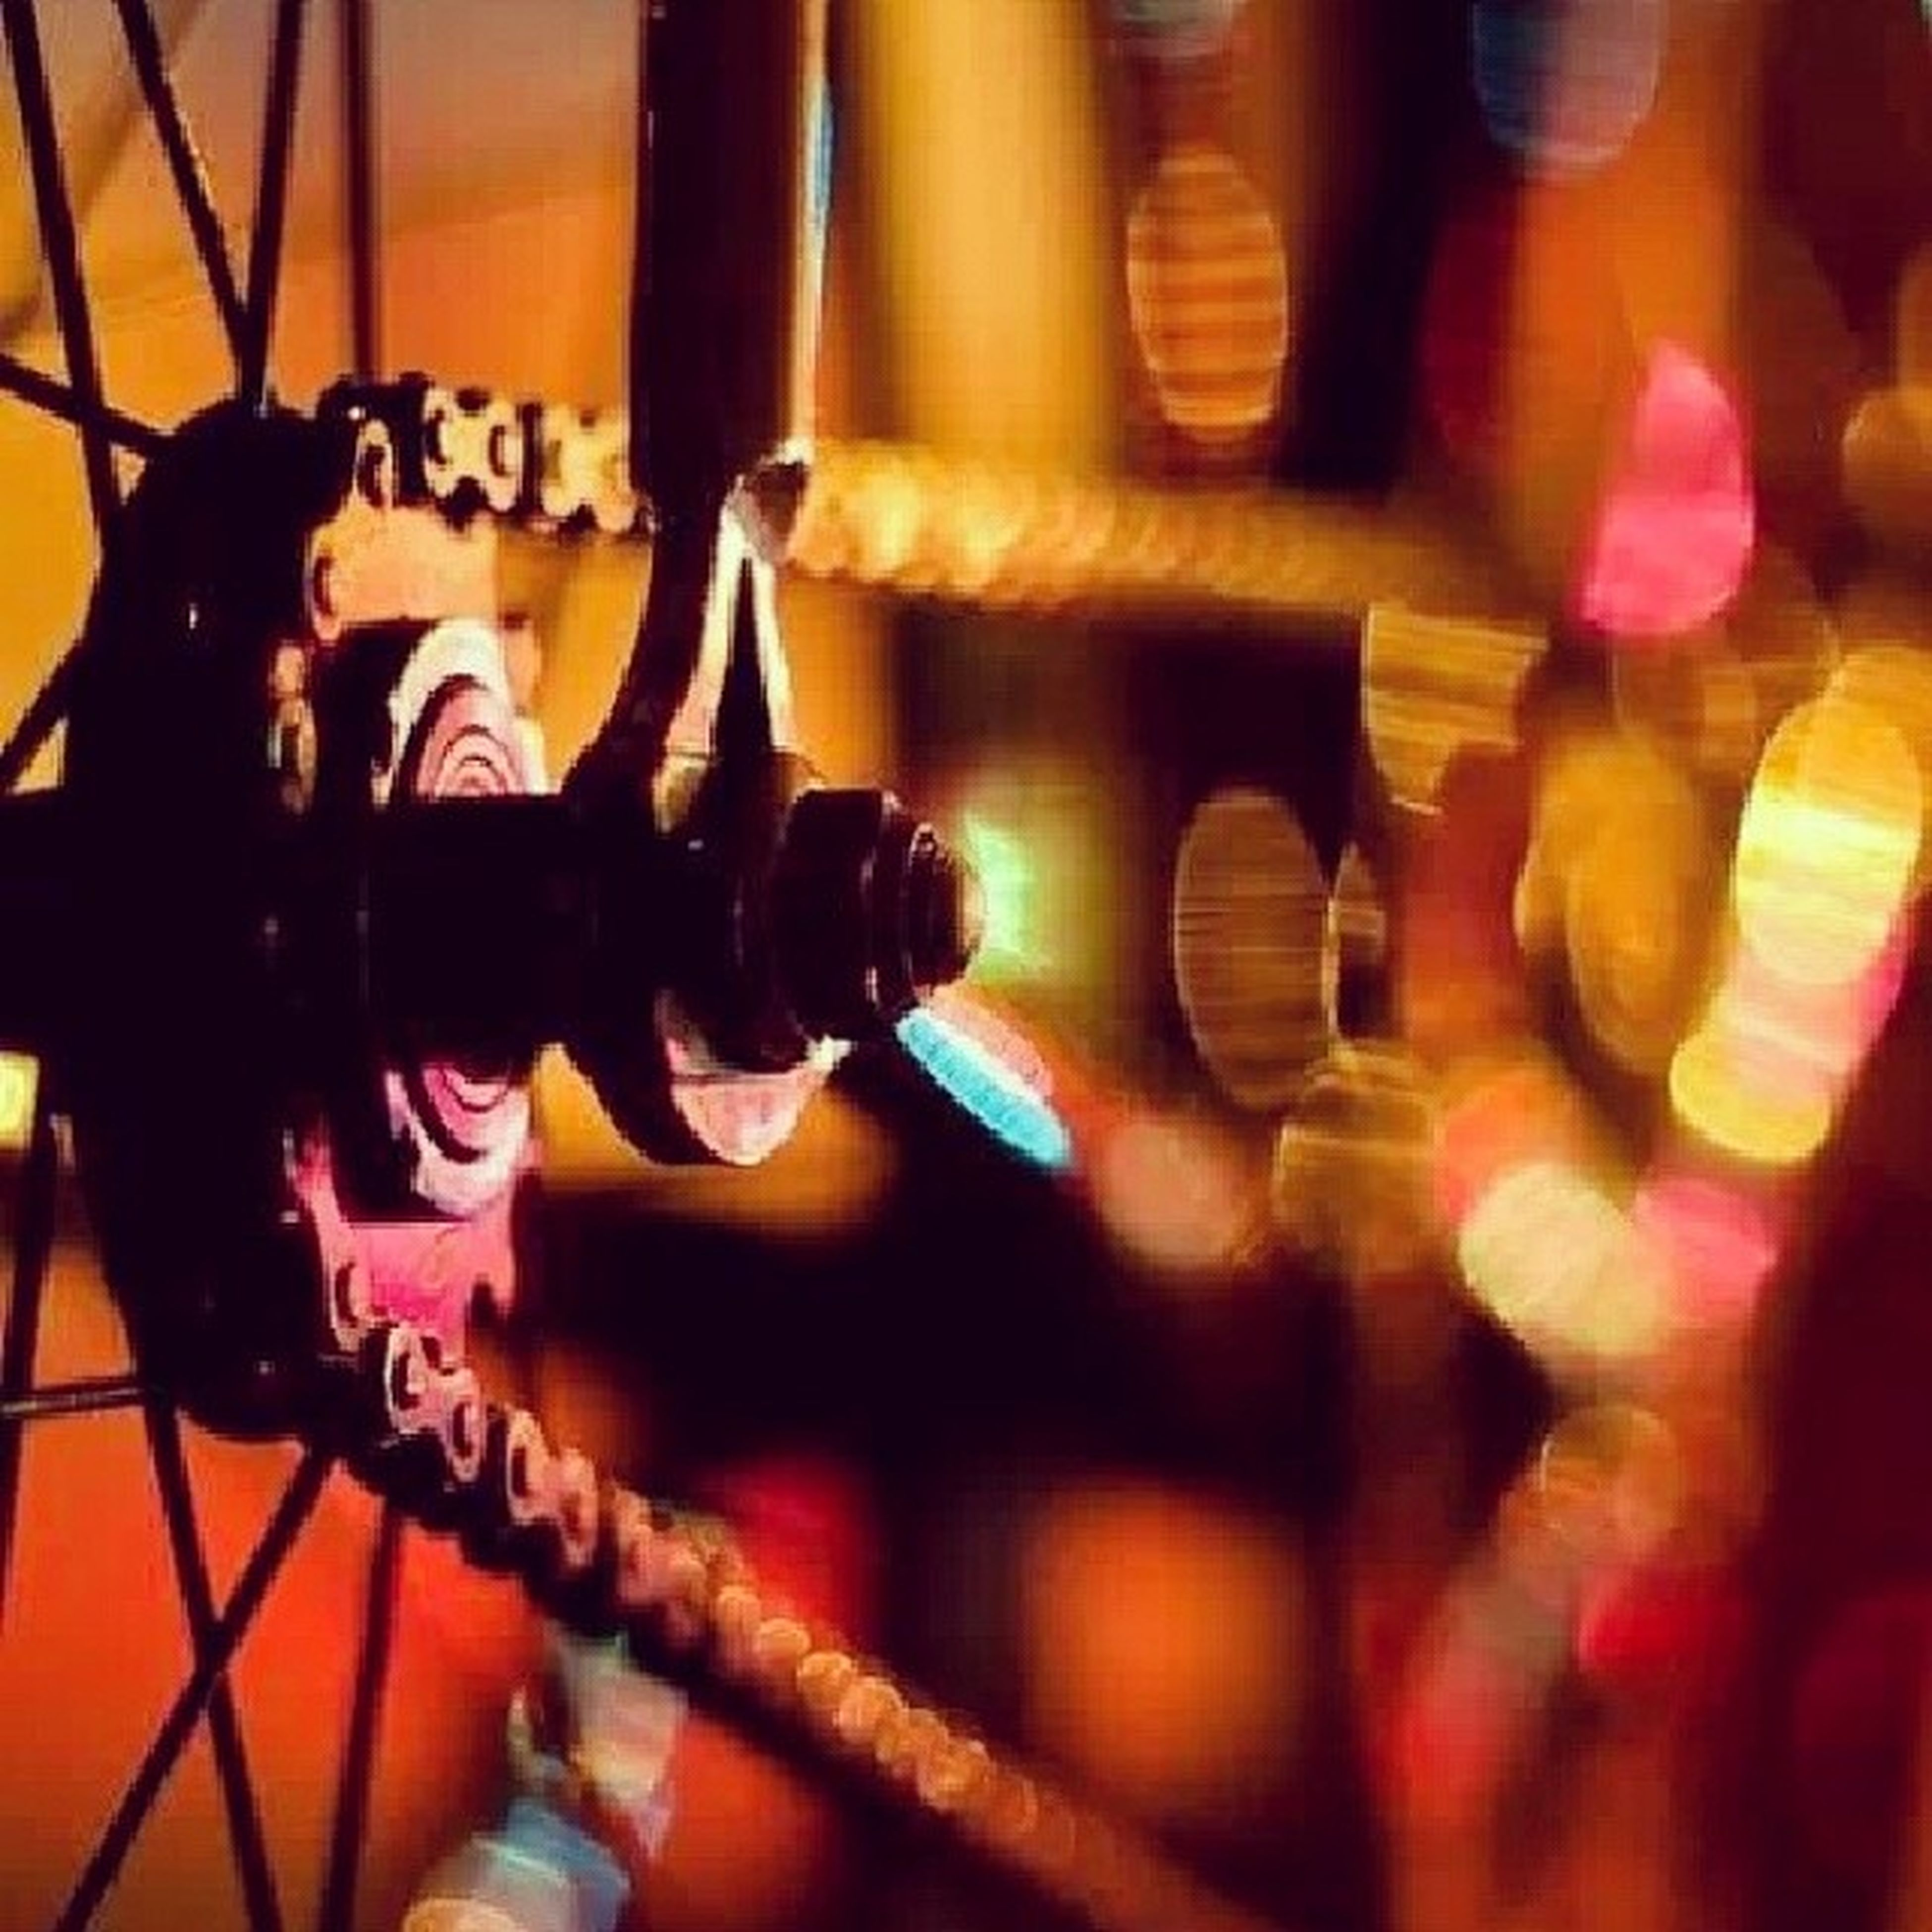 indoors, lifestyles, illuminated, leisure activity, men, blurred motion, person, selective focus, standing, lighting equipment, technology, arts culture and entertainment, transportation, multi colored, wall - building feature, reflection, defocused